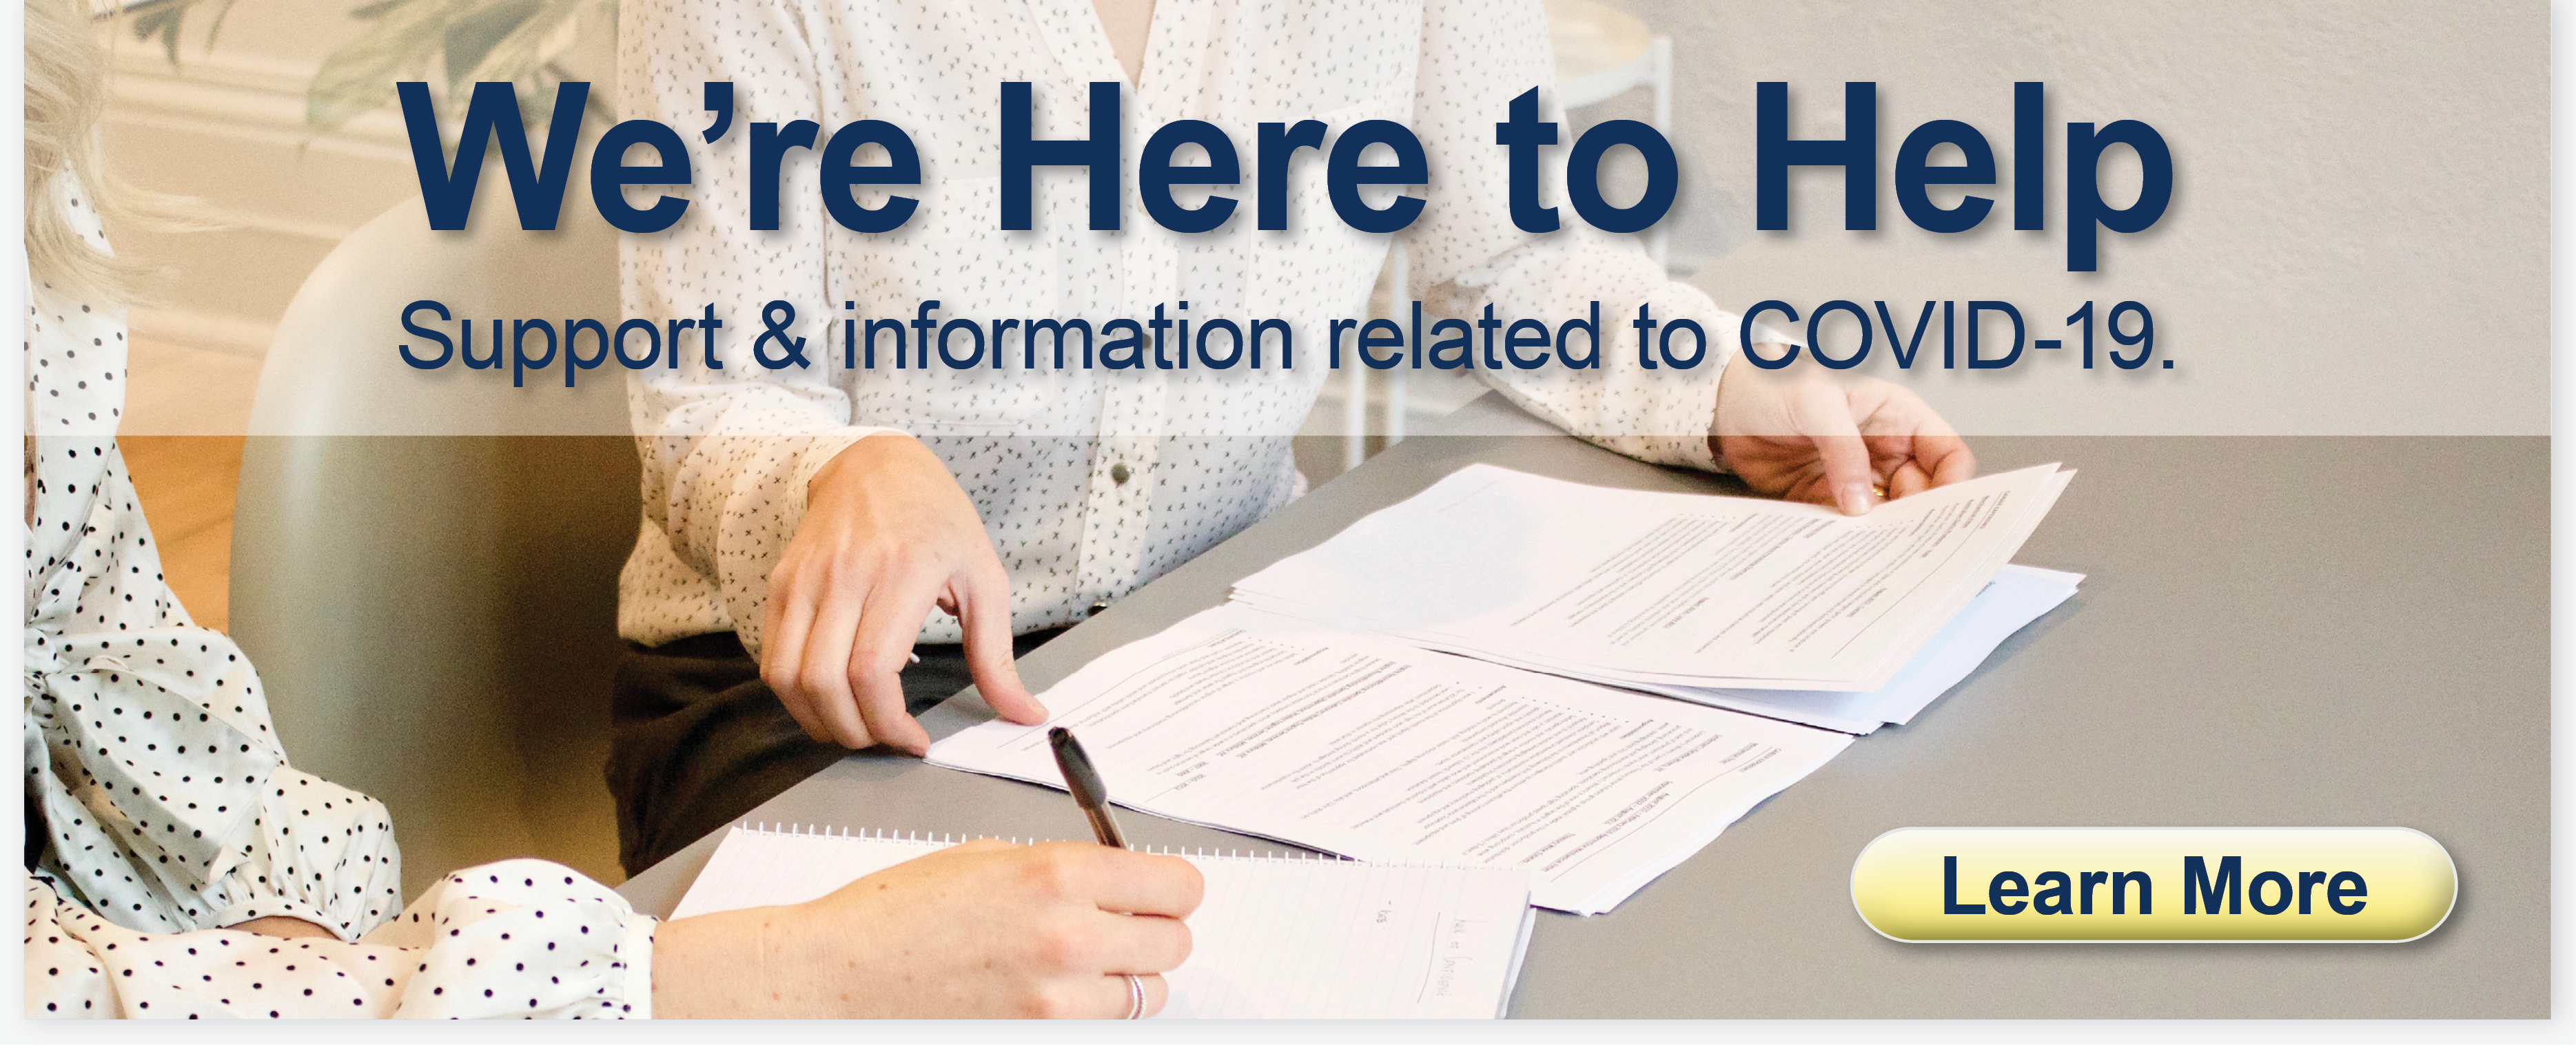 We're Here to Help: Support & information related to COVID-19